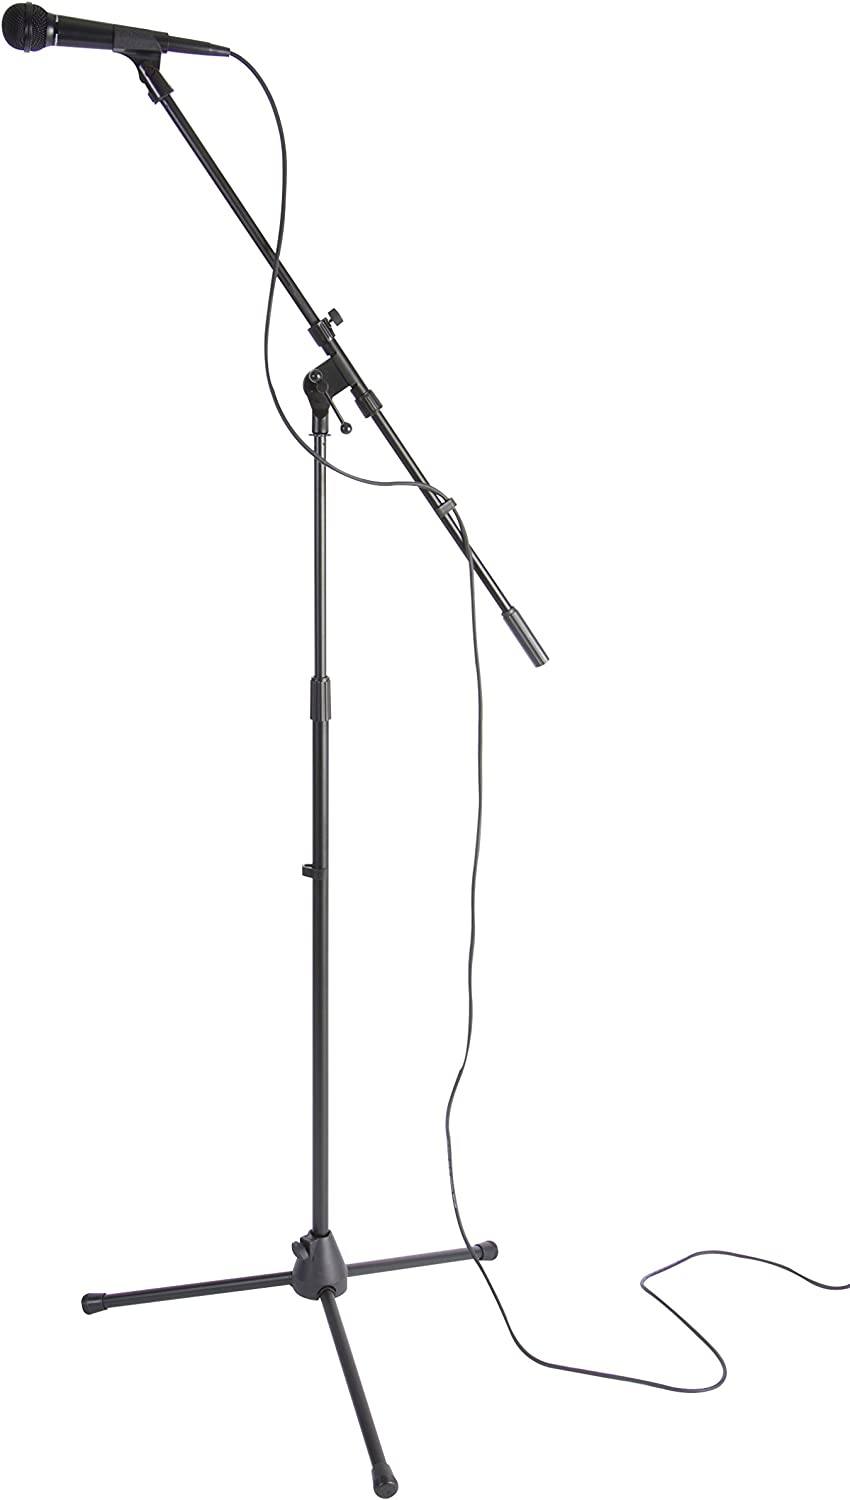 Microphone Stand Detachable Metal Handle Bracket Desk Microphone Stand BV